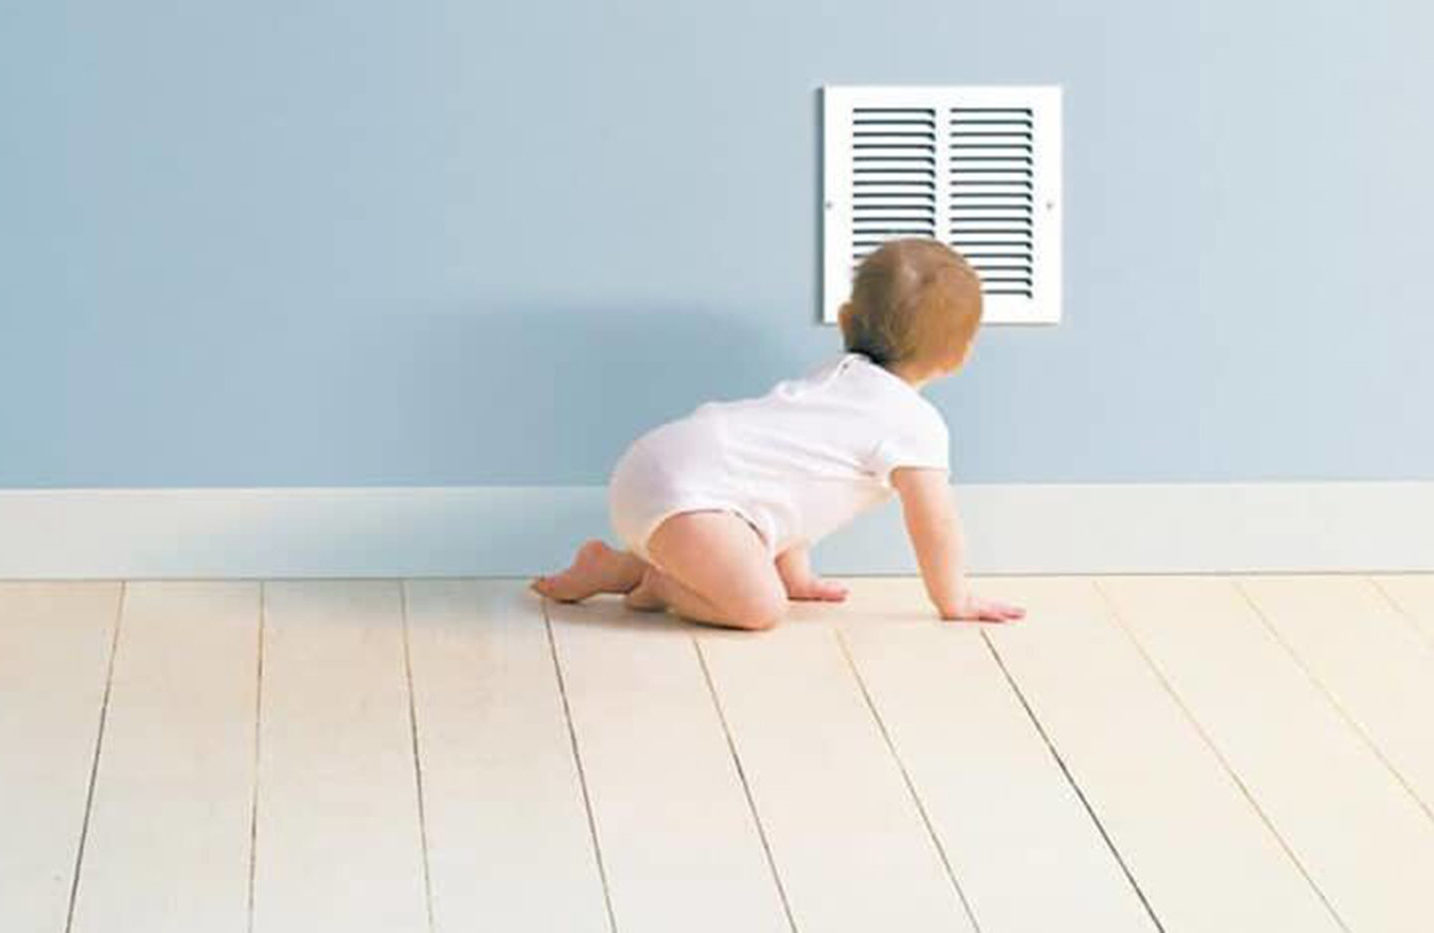 http://schaumburgairducts.com/wp-content/uploads/2020/01/eco-air-ducts-family-breath-easy-e1578615373250.jpg